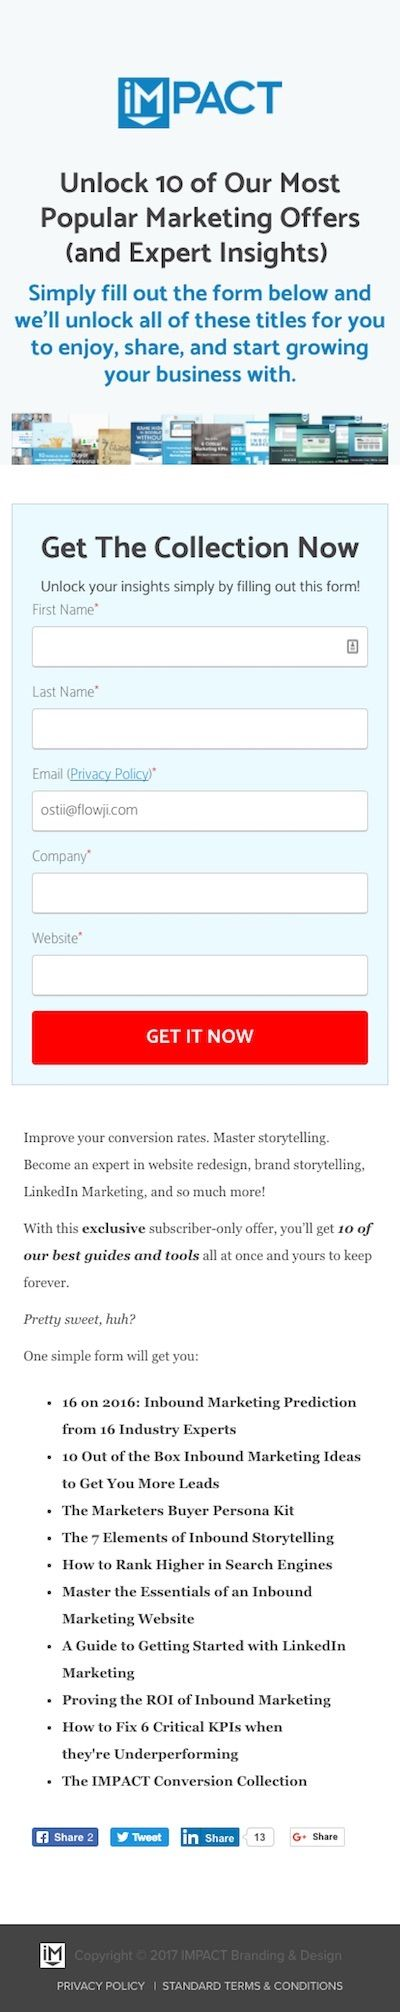 Case Study + Projects page for Our 10 Most Popular Marketing Offers for Free from Impact BND - Mobile Version